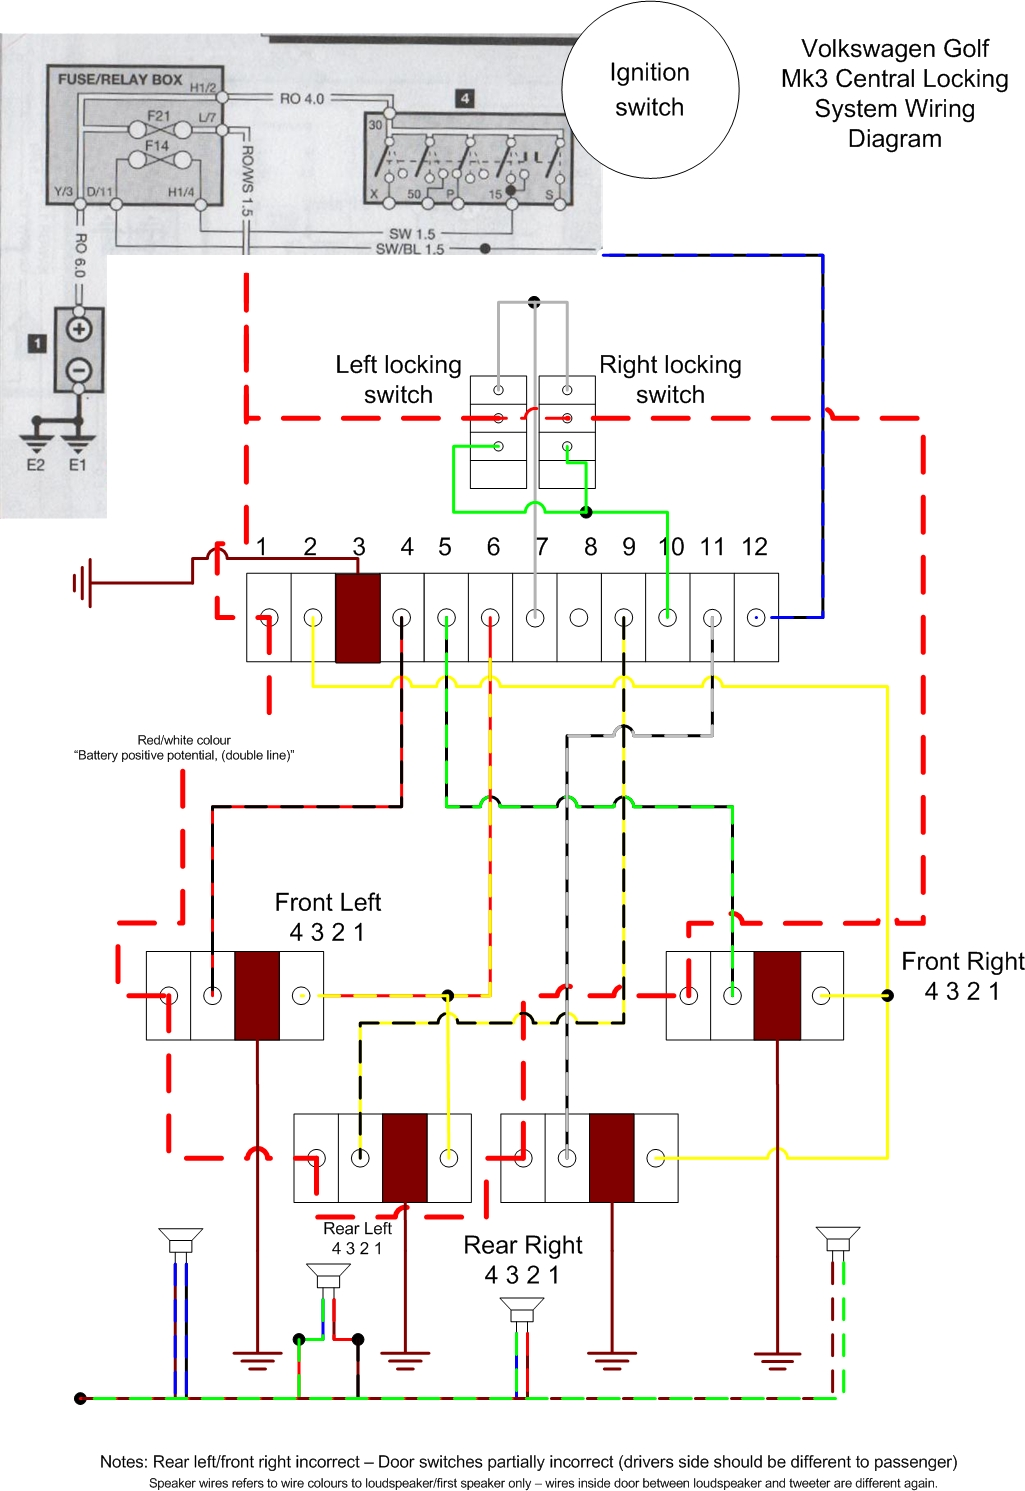 Central Locking System Operation And Diagnosis